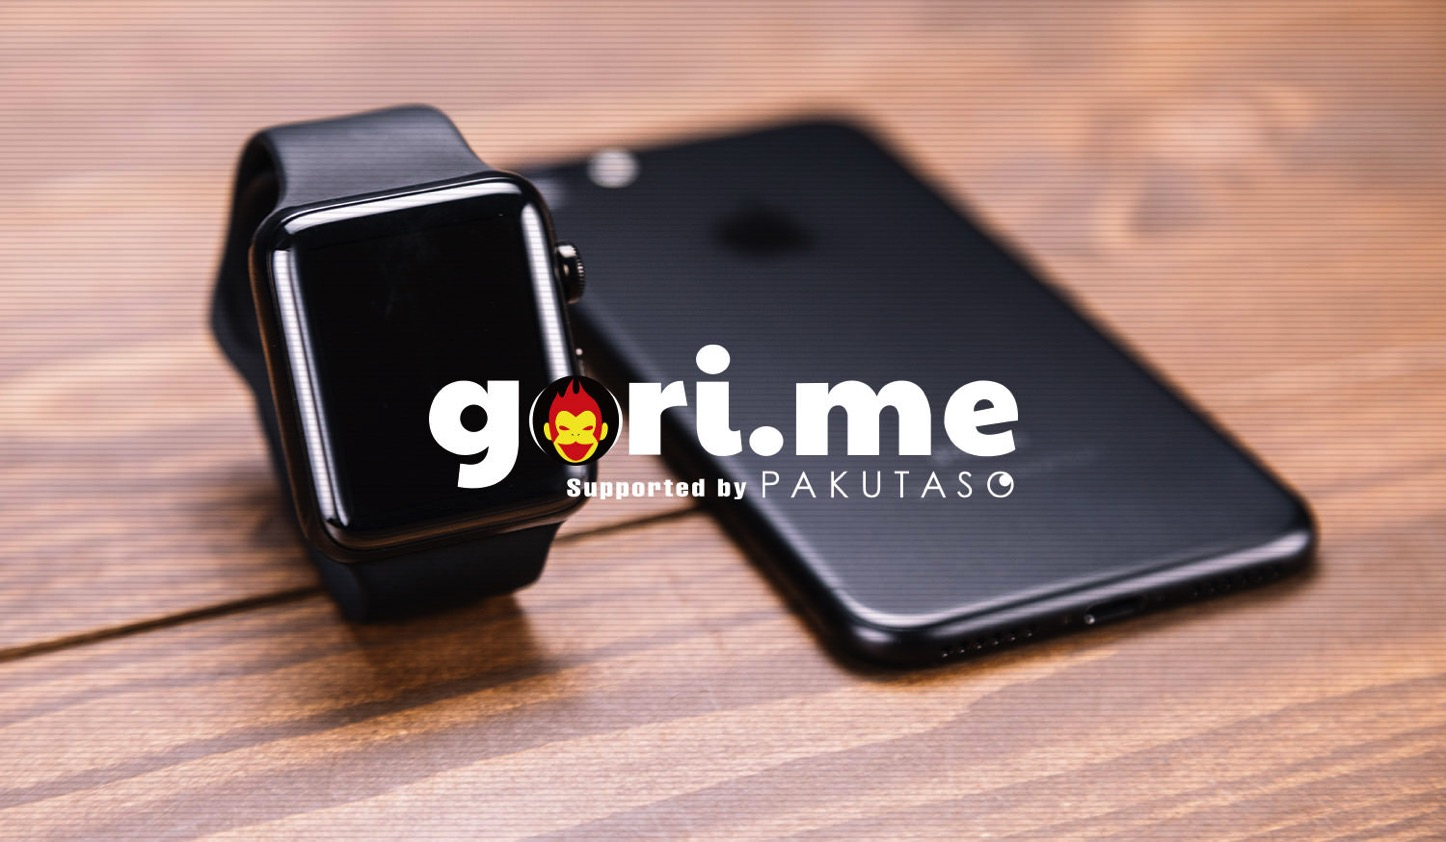 gori.me × pakutaso Apple Watch Series 2 Review